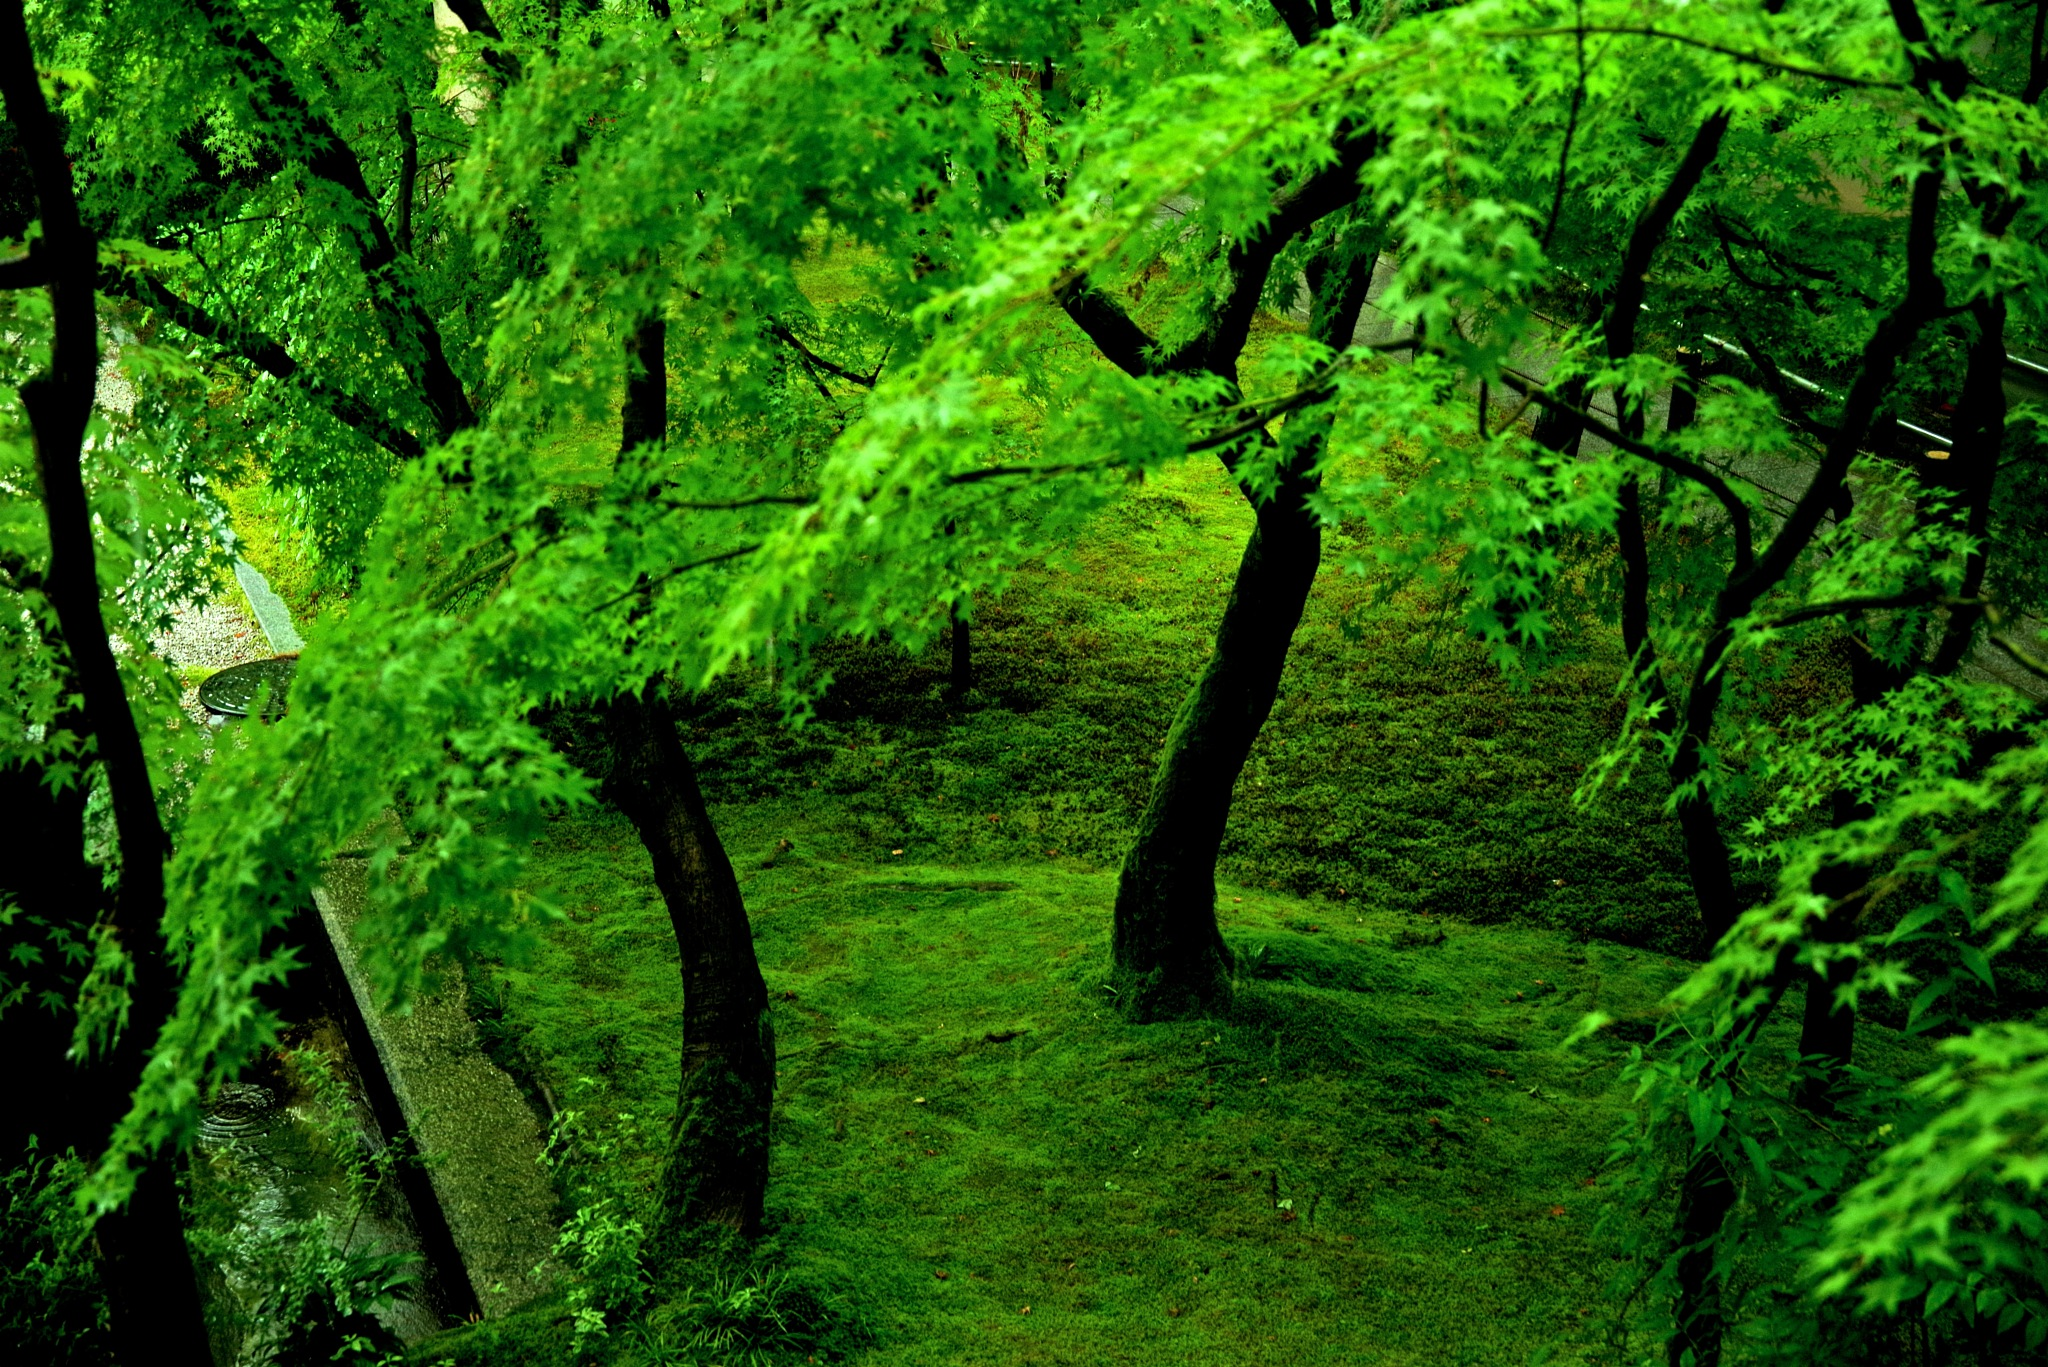 Moss Green by 一日写真一枚